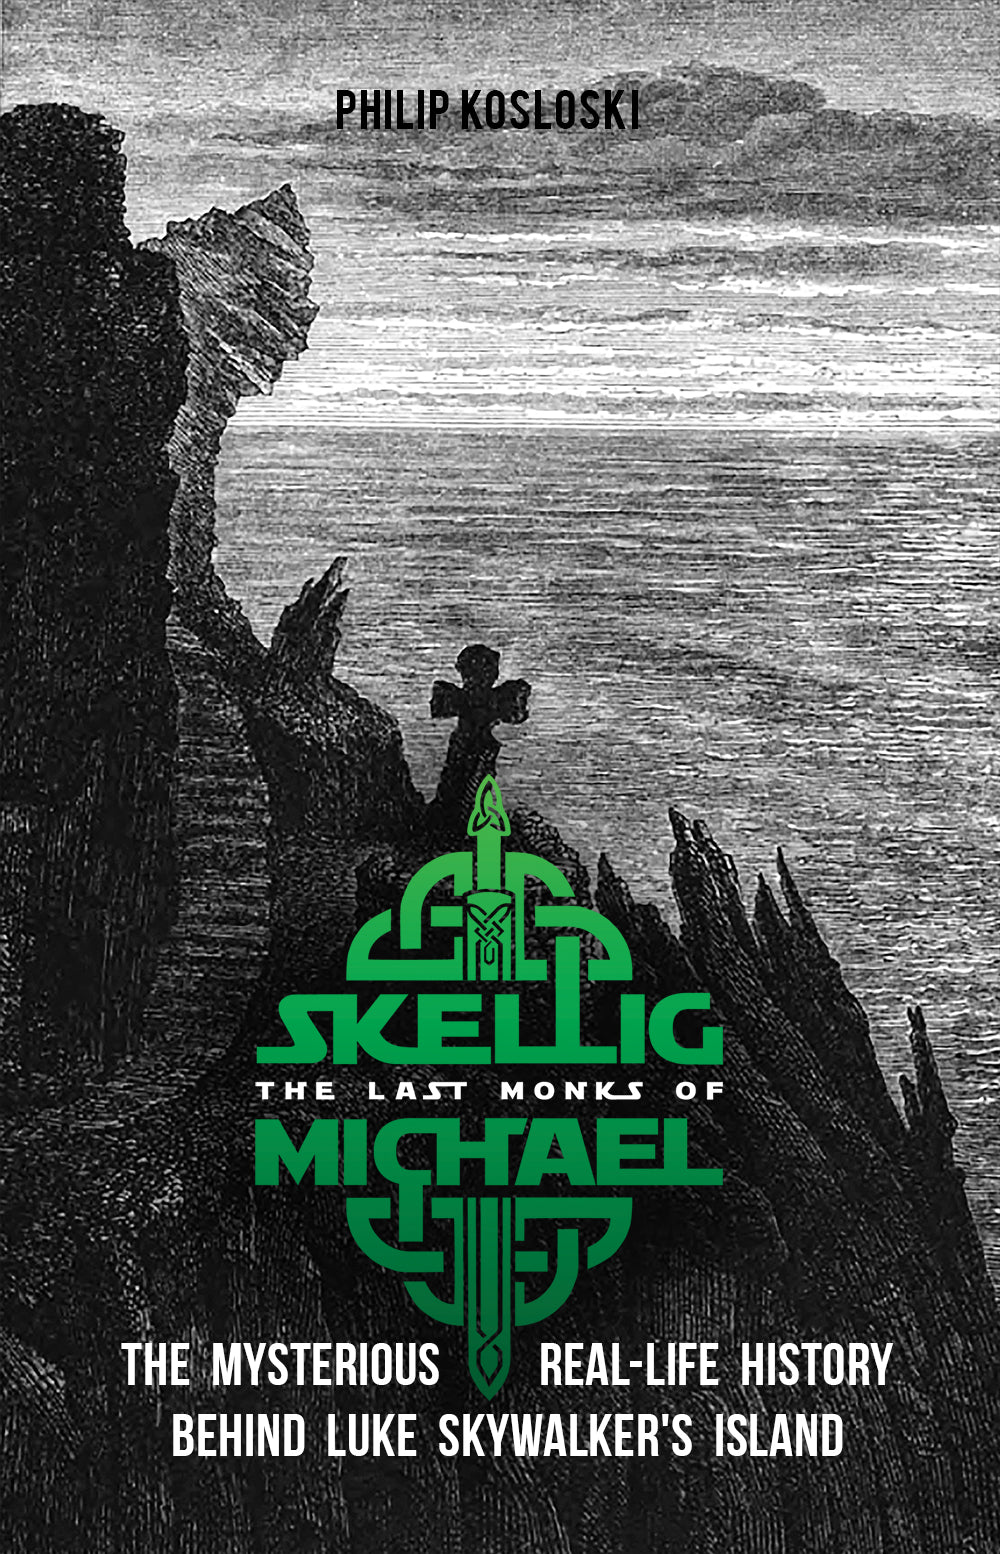 The Last Monks of Skellig Michael: The Mysterious Real-Life History Behind Luke Skywalker's Island